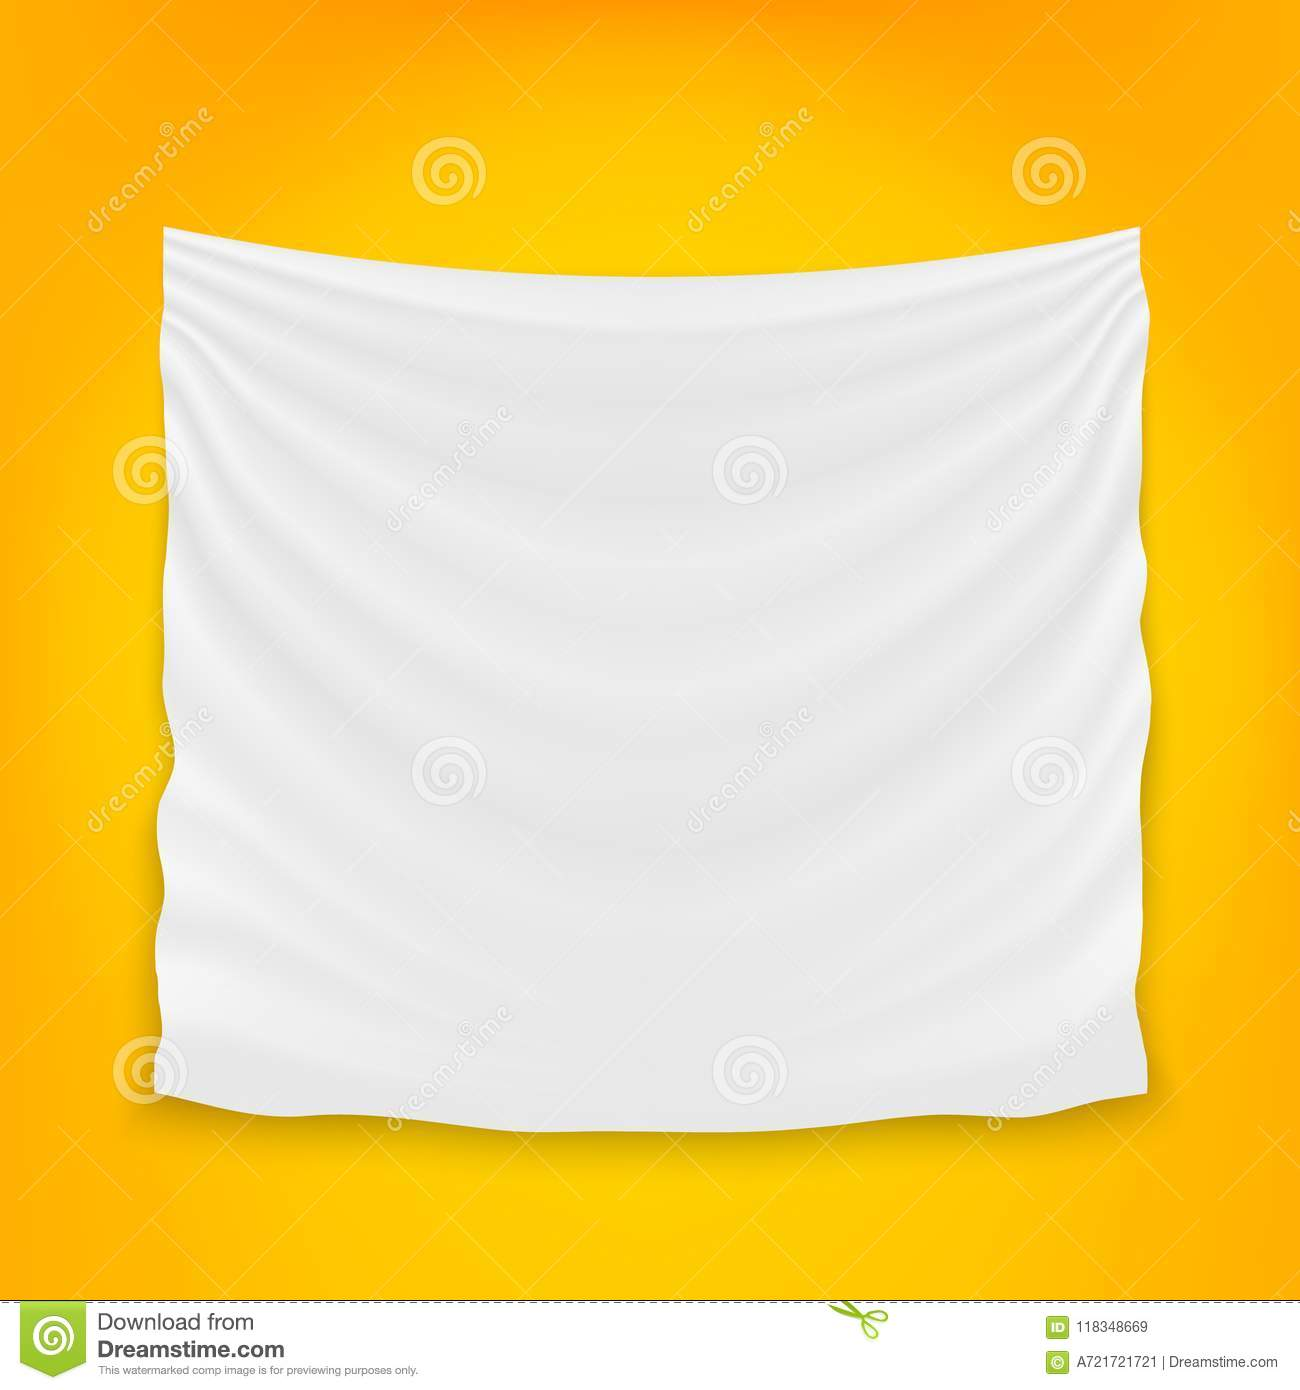 Creative Vector Illustration Of Hanging Empty White Cloth Isolated